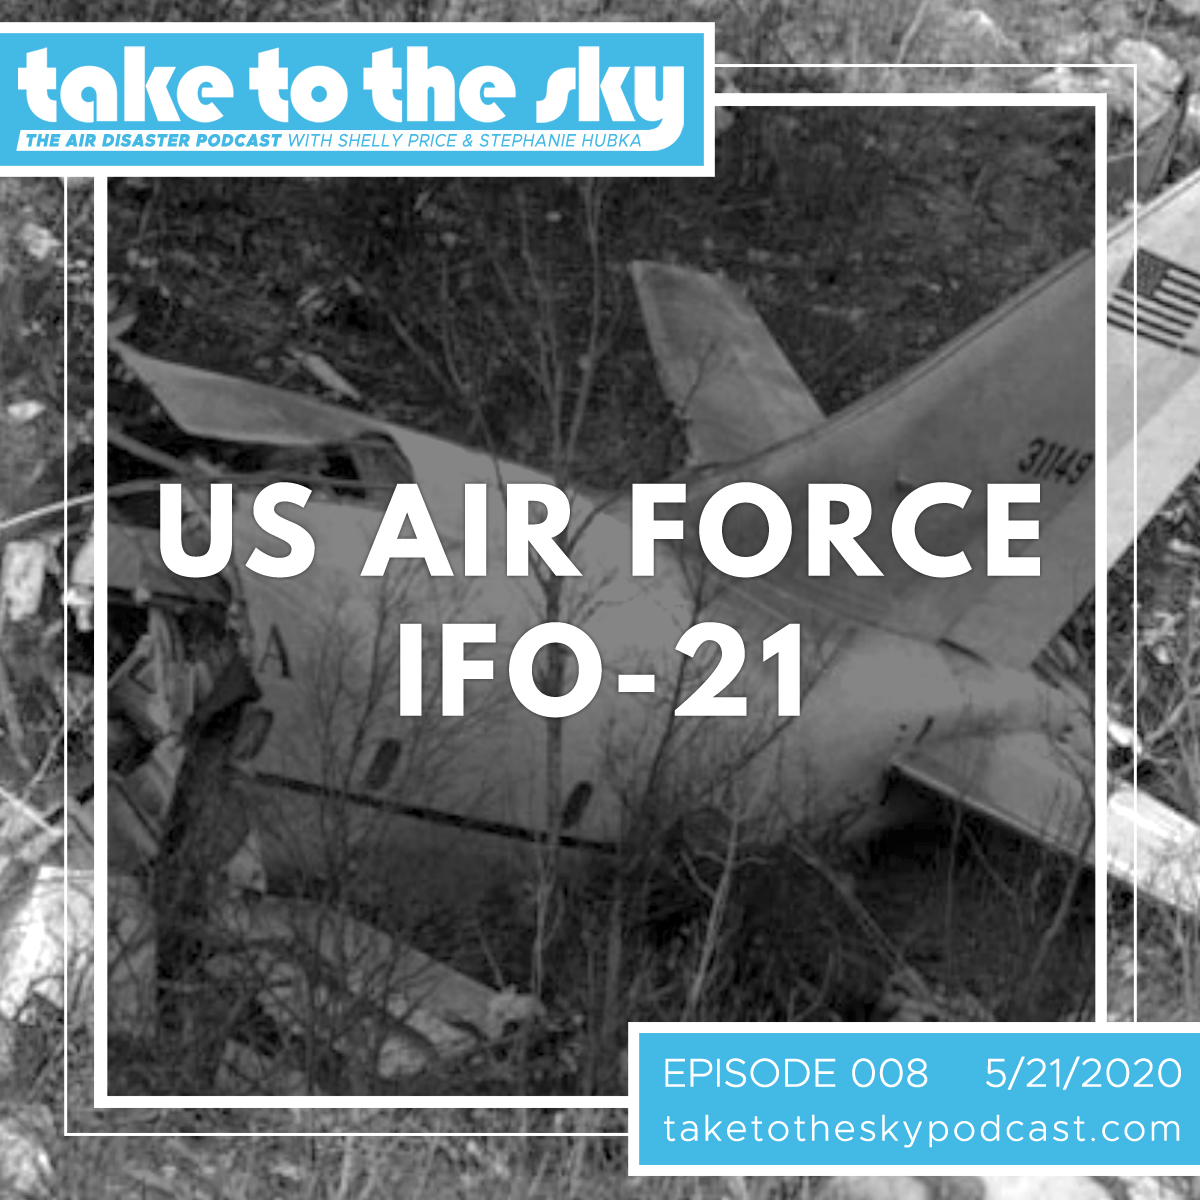 Take to the Sky Episode 008: USAF IFO-21